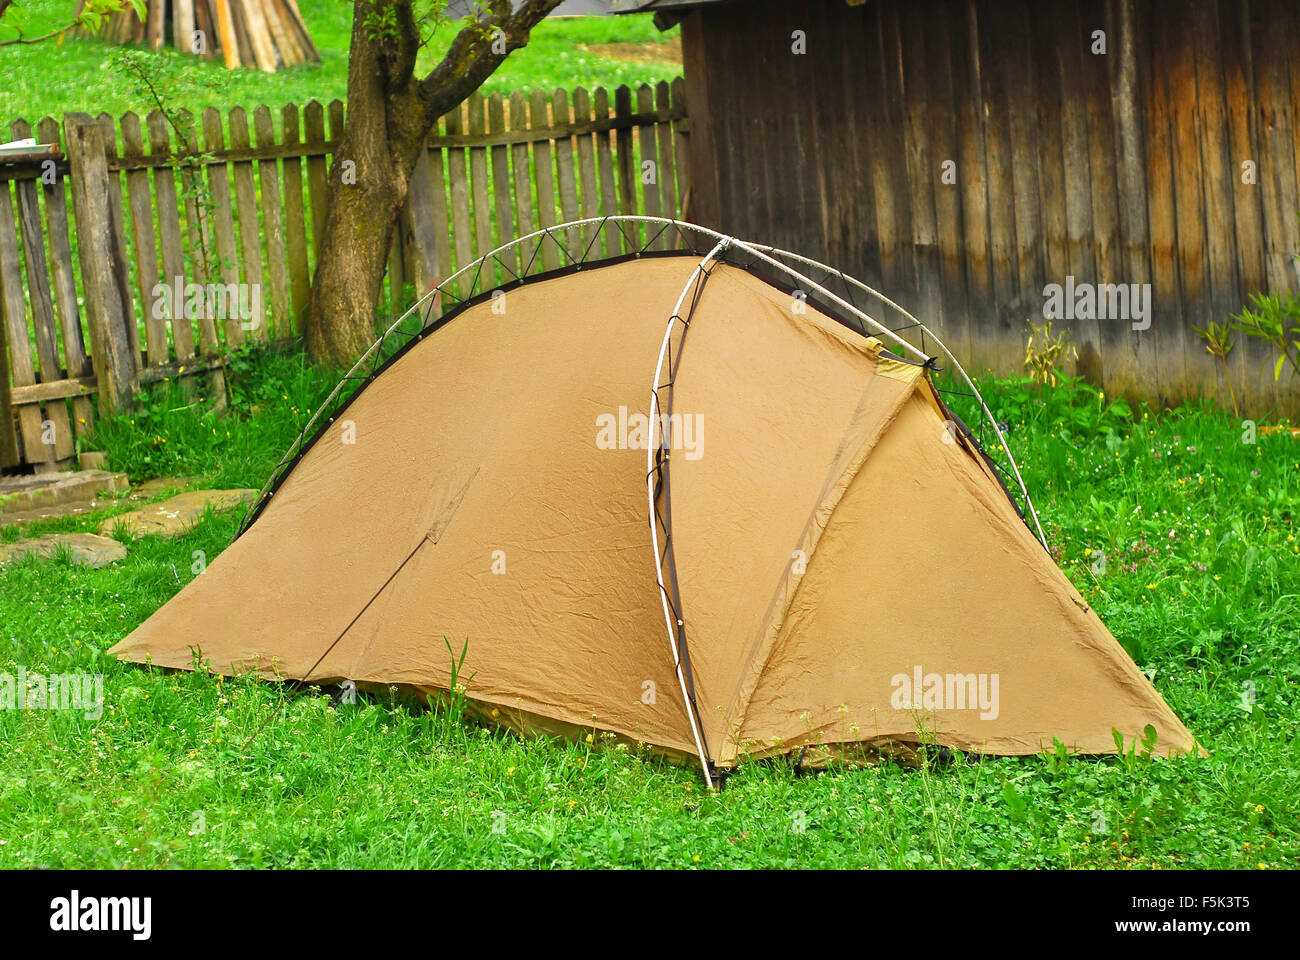 ecotourism, camping in the countryside - Stock Image